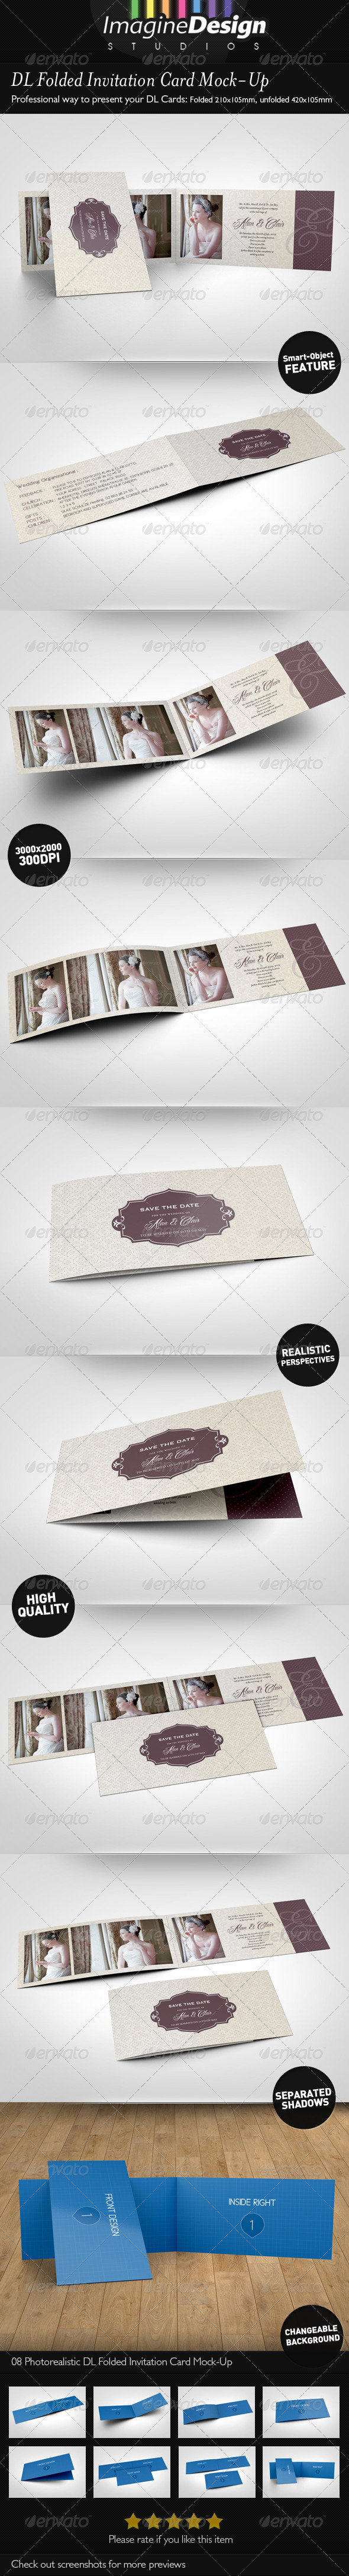 GraphicRiver DL Folded Invitation Card Mock-Up 4186634